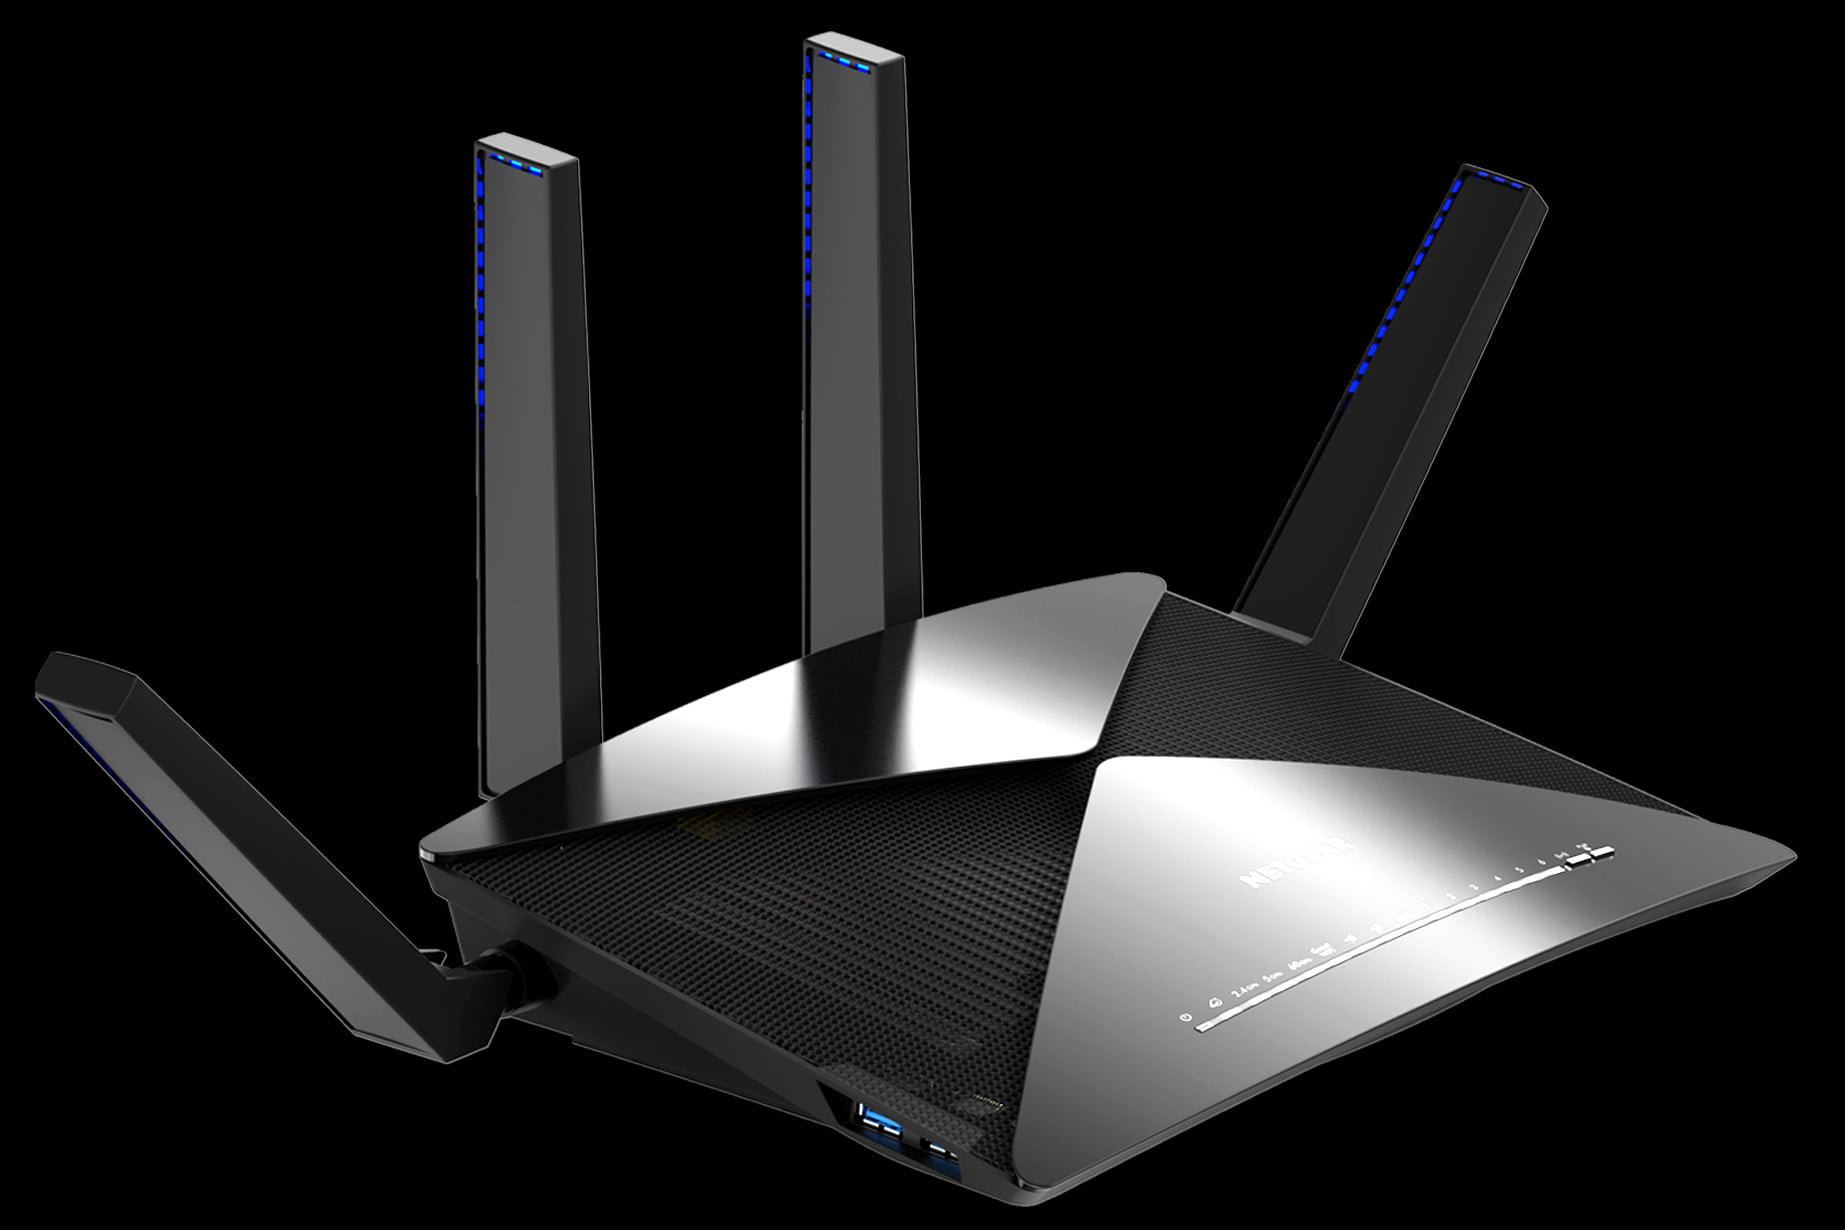 No Wireless AC? Netgear Has A Wireless AD Router For You